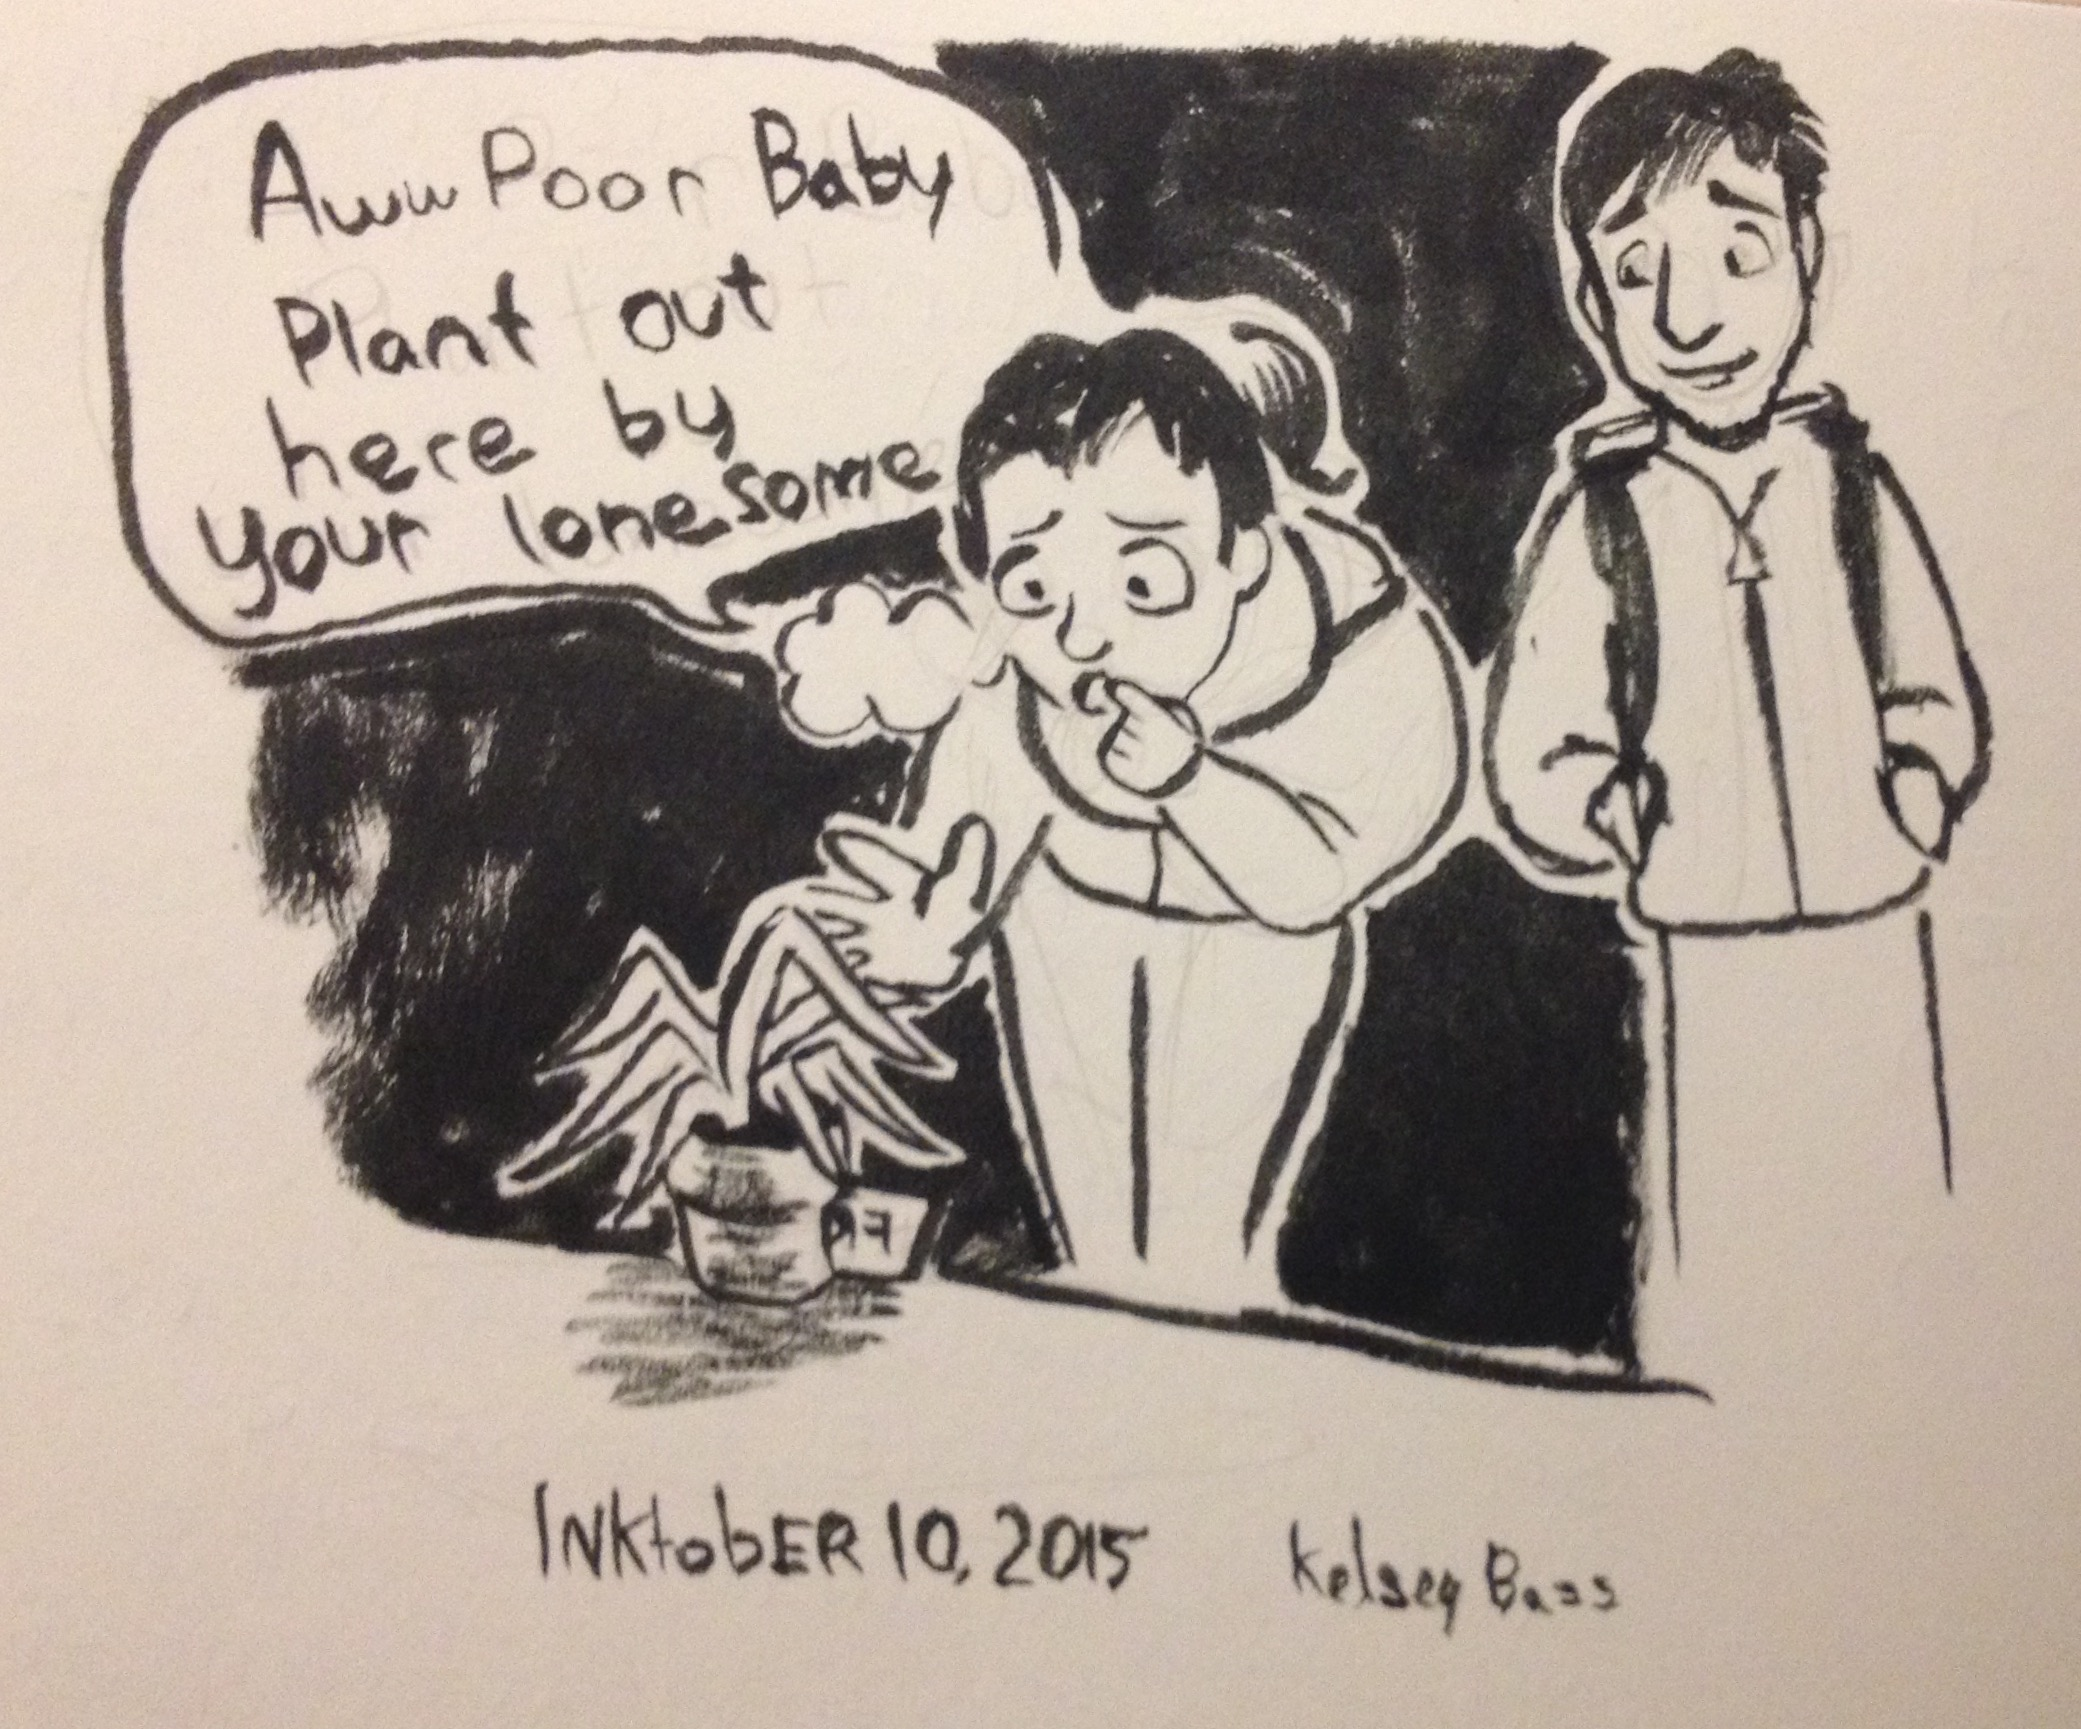 Inktober 10, 2015 picking up an abandoned plant.